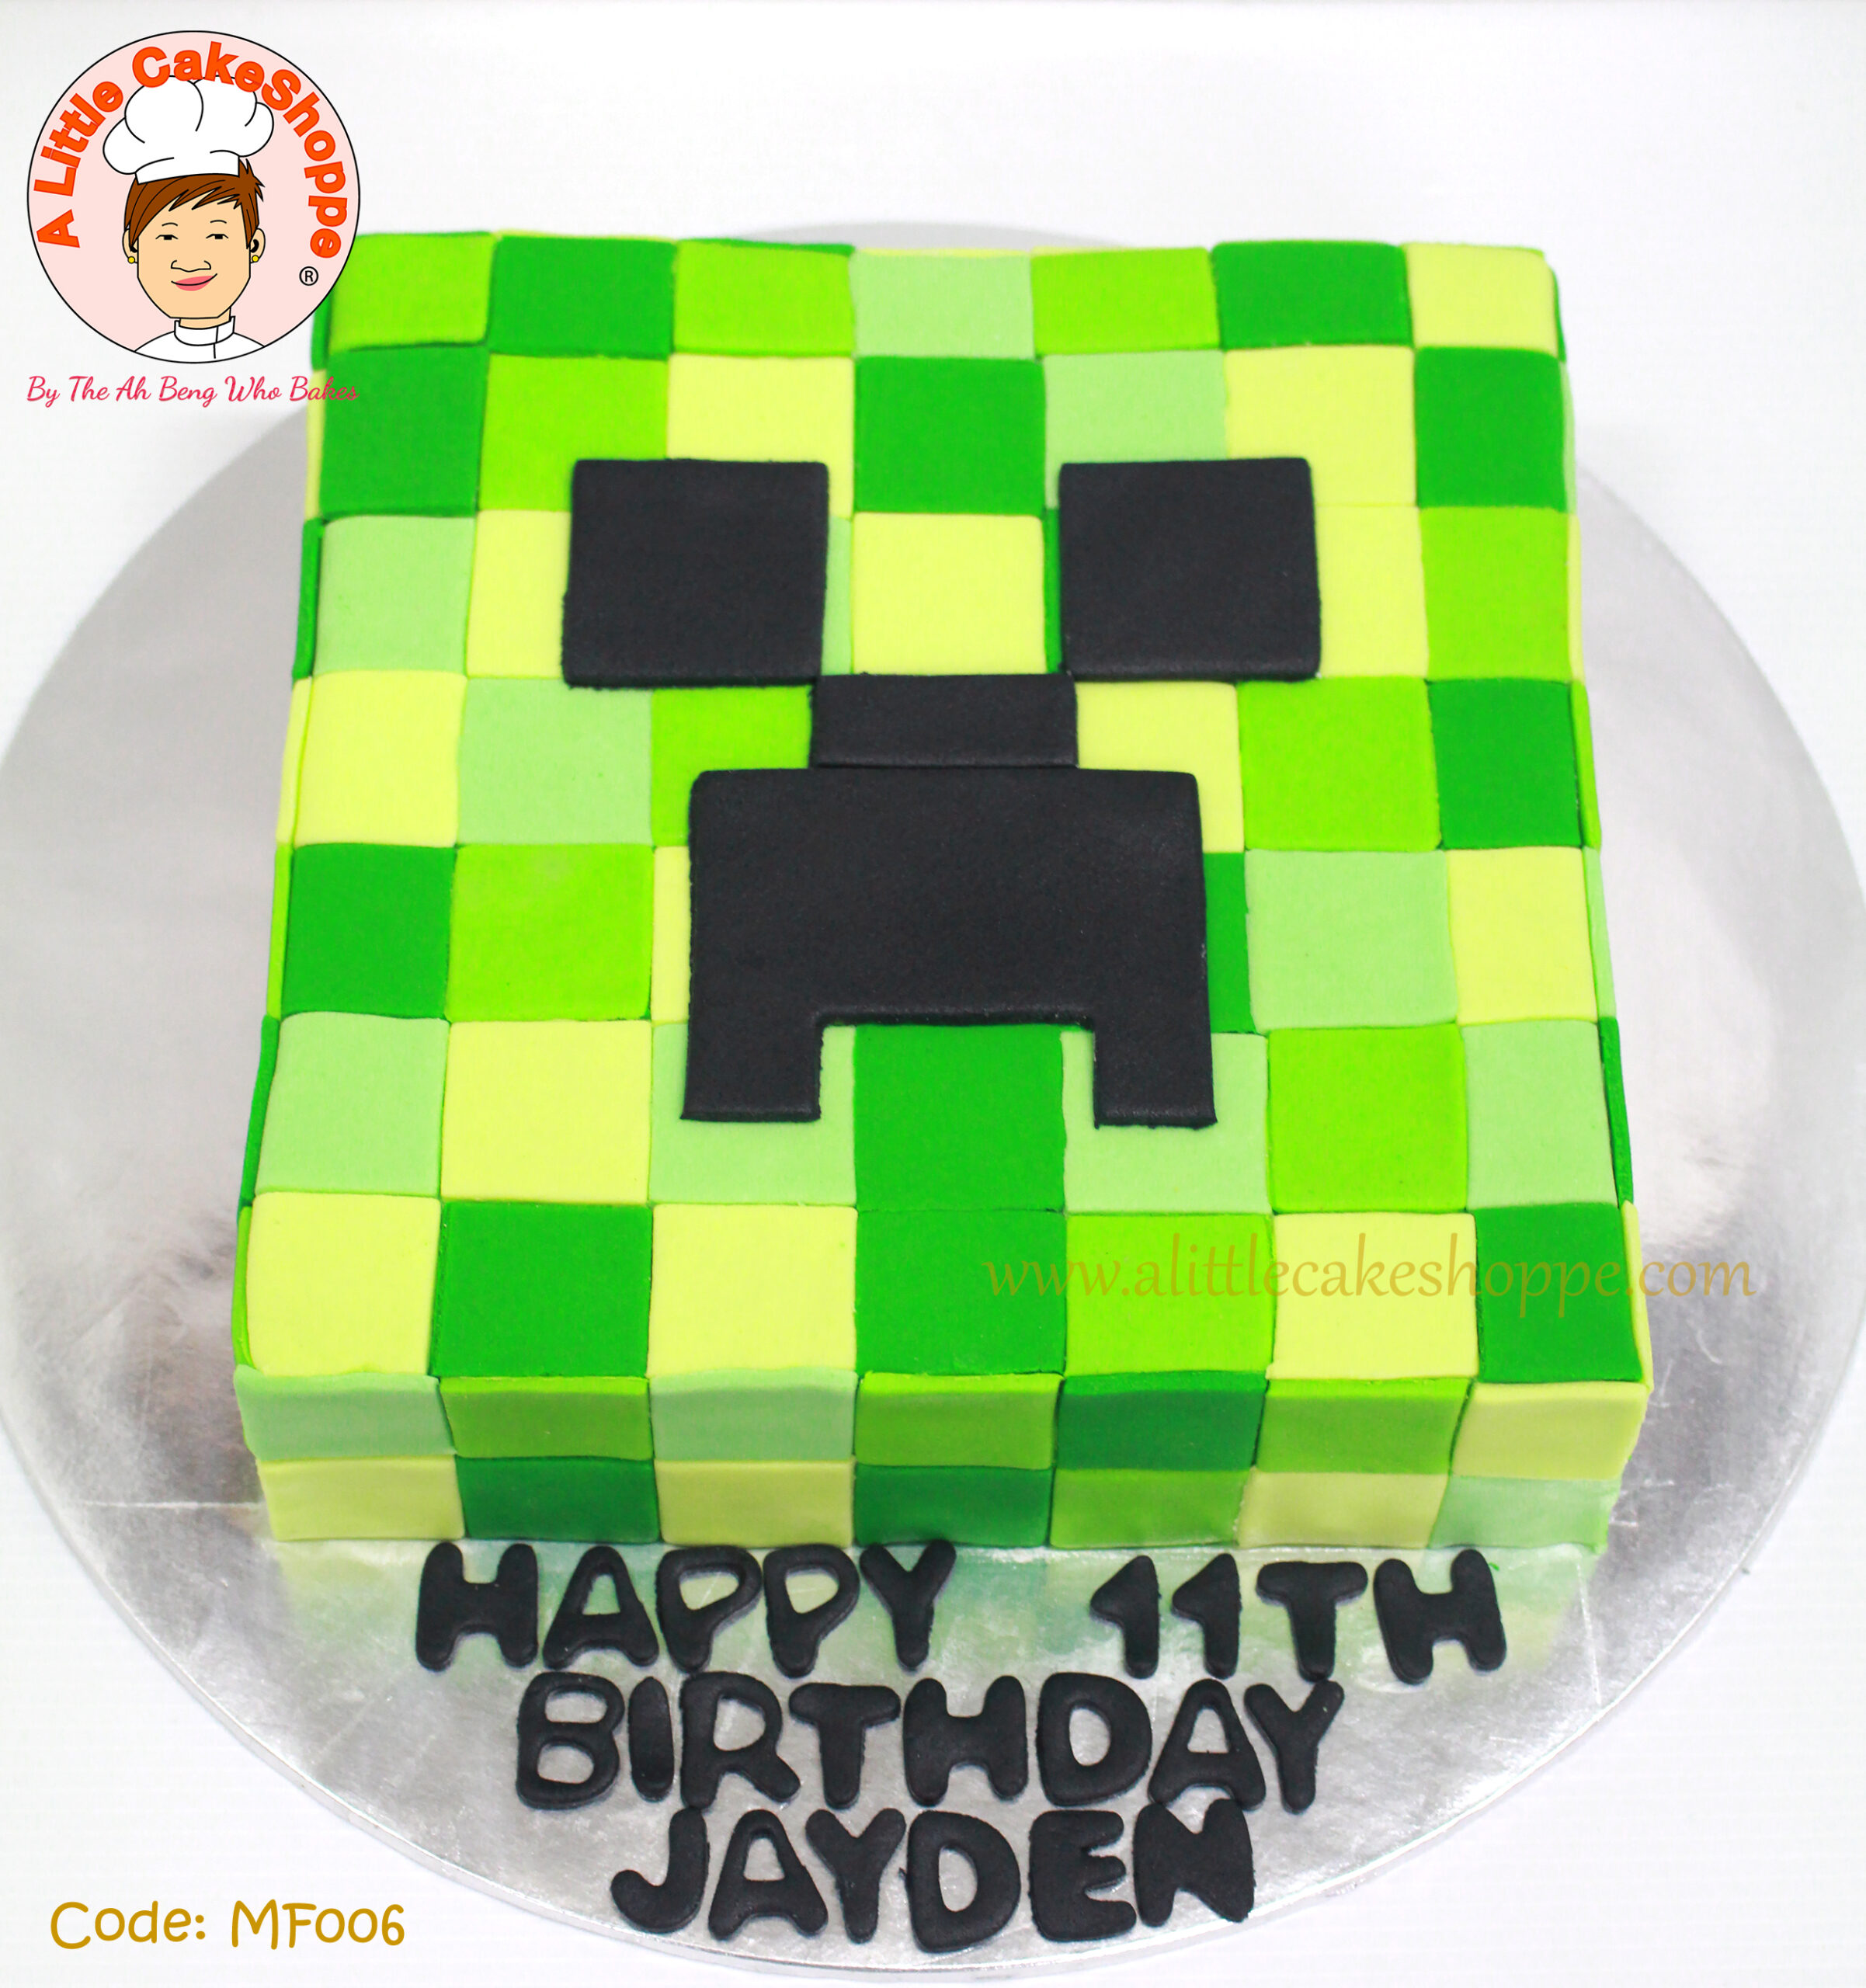 Best Customised Cake Shop Singapore custom cake 2D 3D birthday cake cupcakes desserts wedding corporate events anniversary 1st birthday 21st birthday fondant fresh cream buttercream cakes alittlecakeshoppe a little cake shoppe compliments review singapore bakers SG cake shop cakeshop ah beng who bakes minecraft